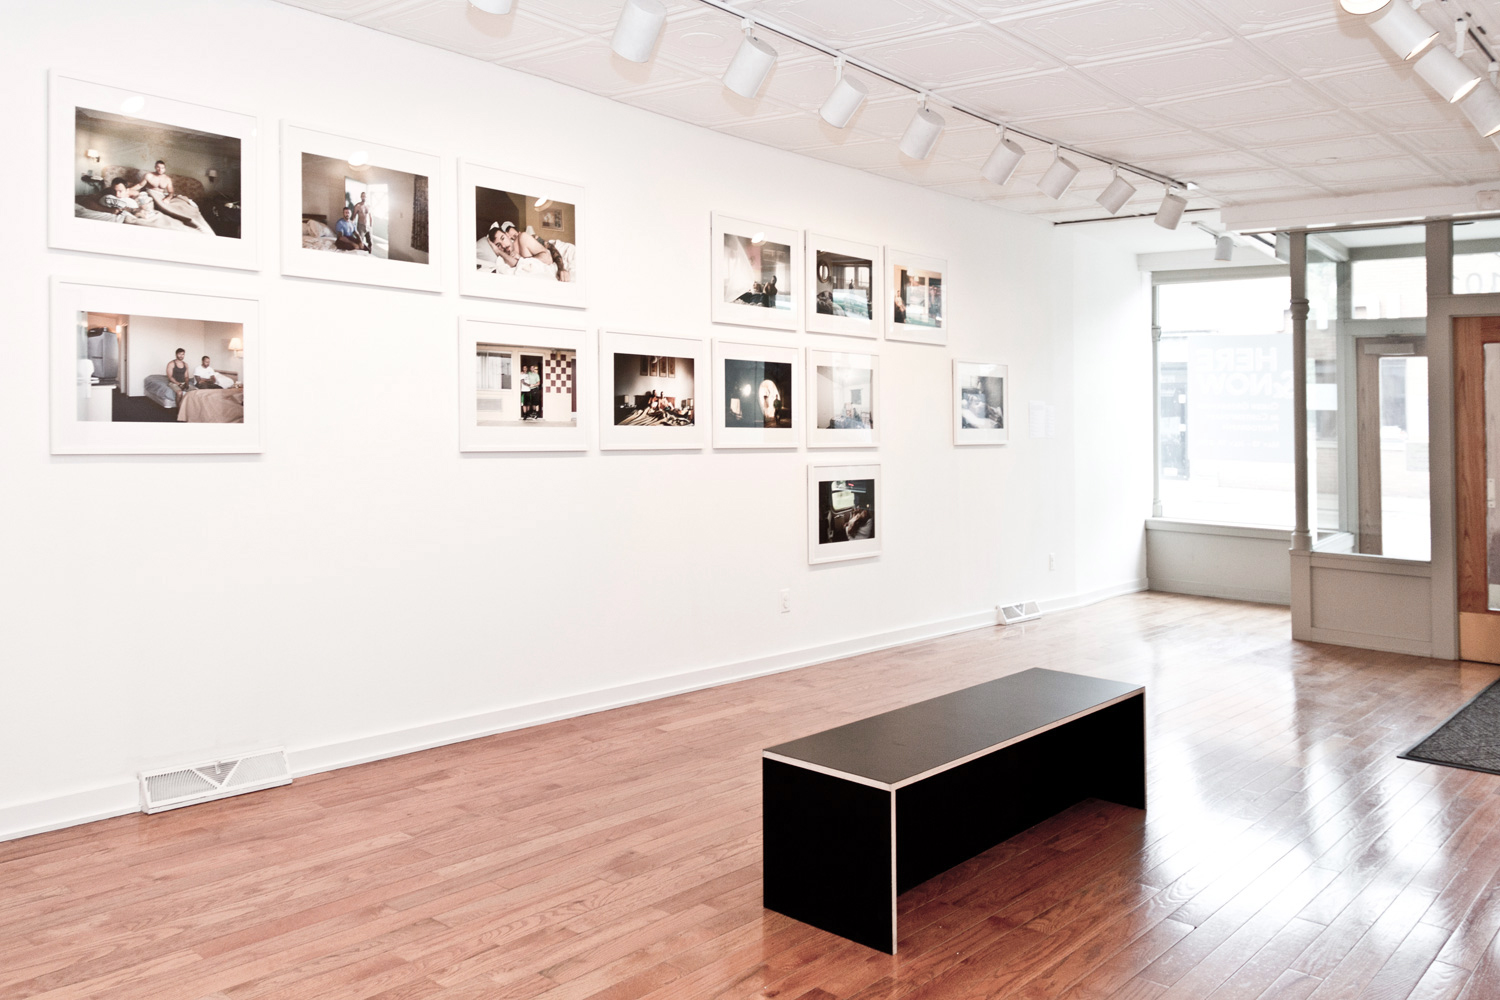 Here and Now: Queer Geographies in Contemporary Photography , curated by Rafael Soldi at the Silver Eye Center for Photography